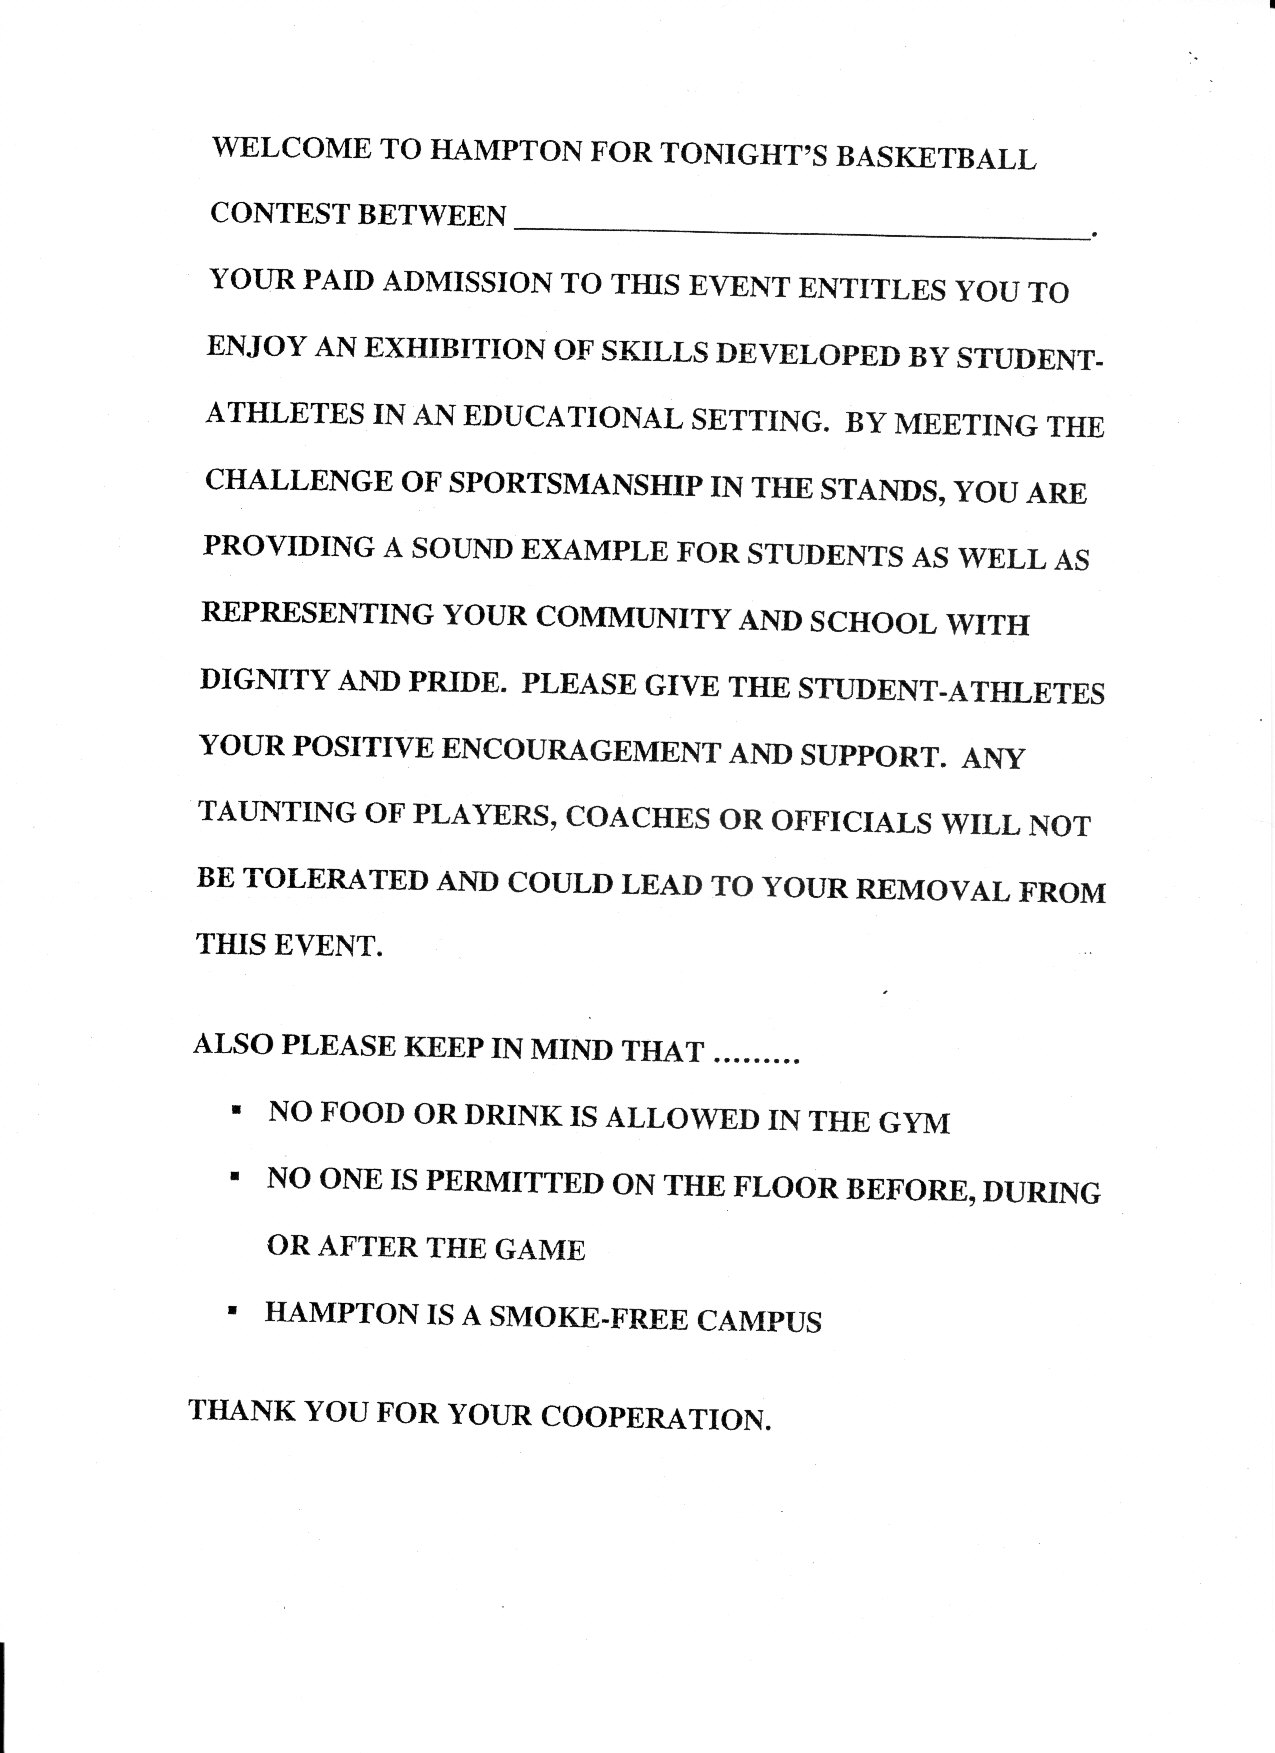 007 Sportsmanship Essay Outline Pregame On Good What Is For 7th Grade Shocking Ideas Pdf In Hindi Full